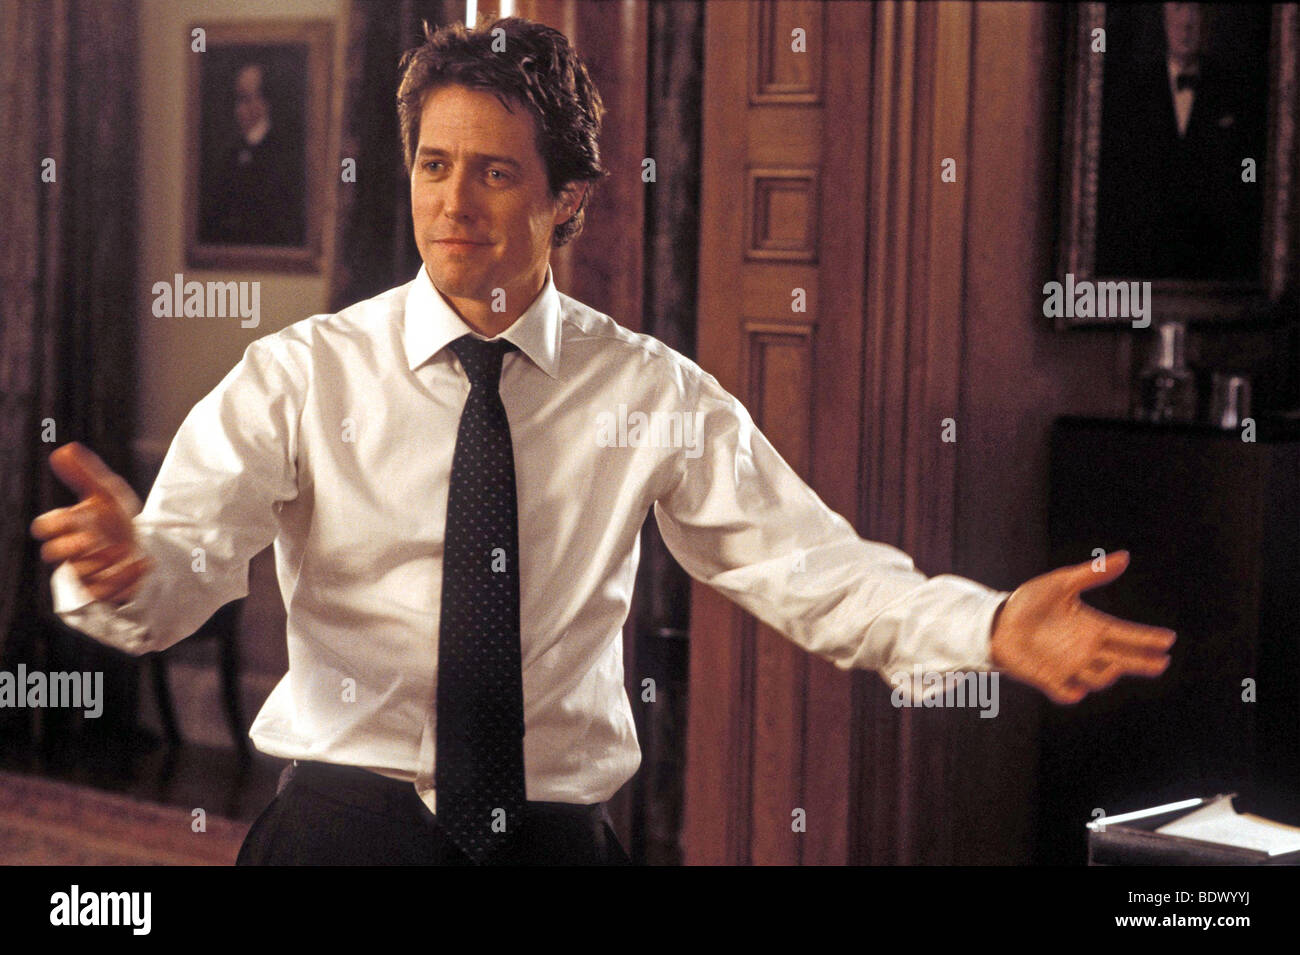 LOVE ACTUALLY  2003 Universal film with Hugh Grant as the Prime Minister - Stock Image